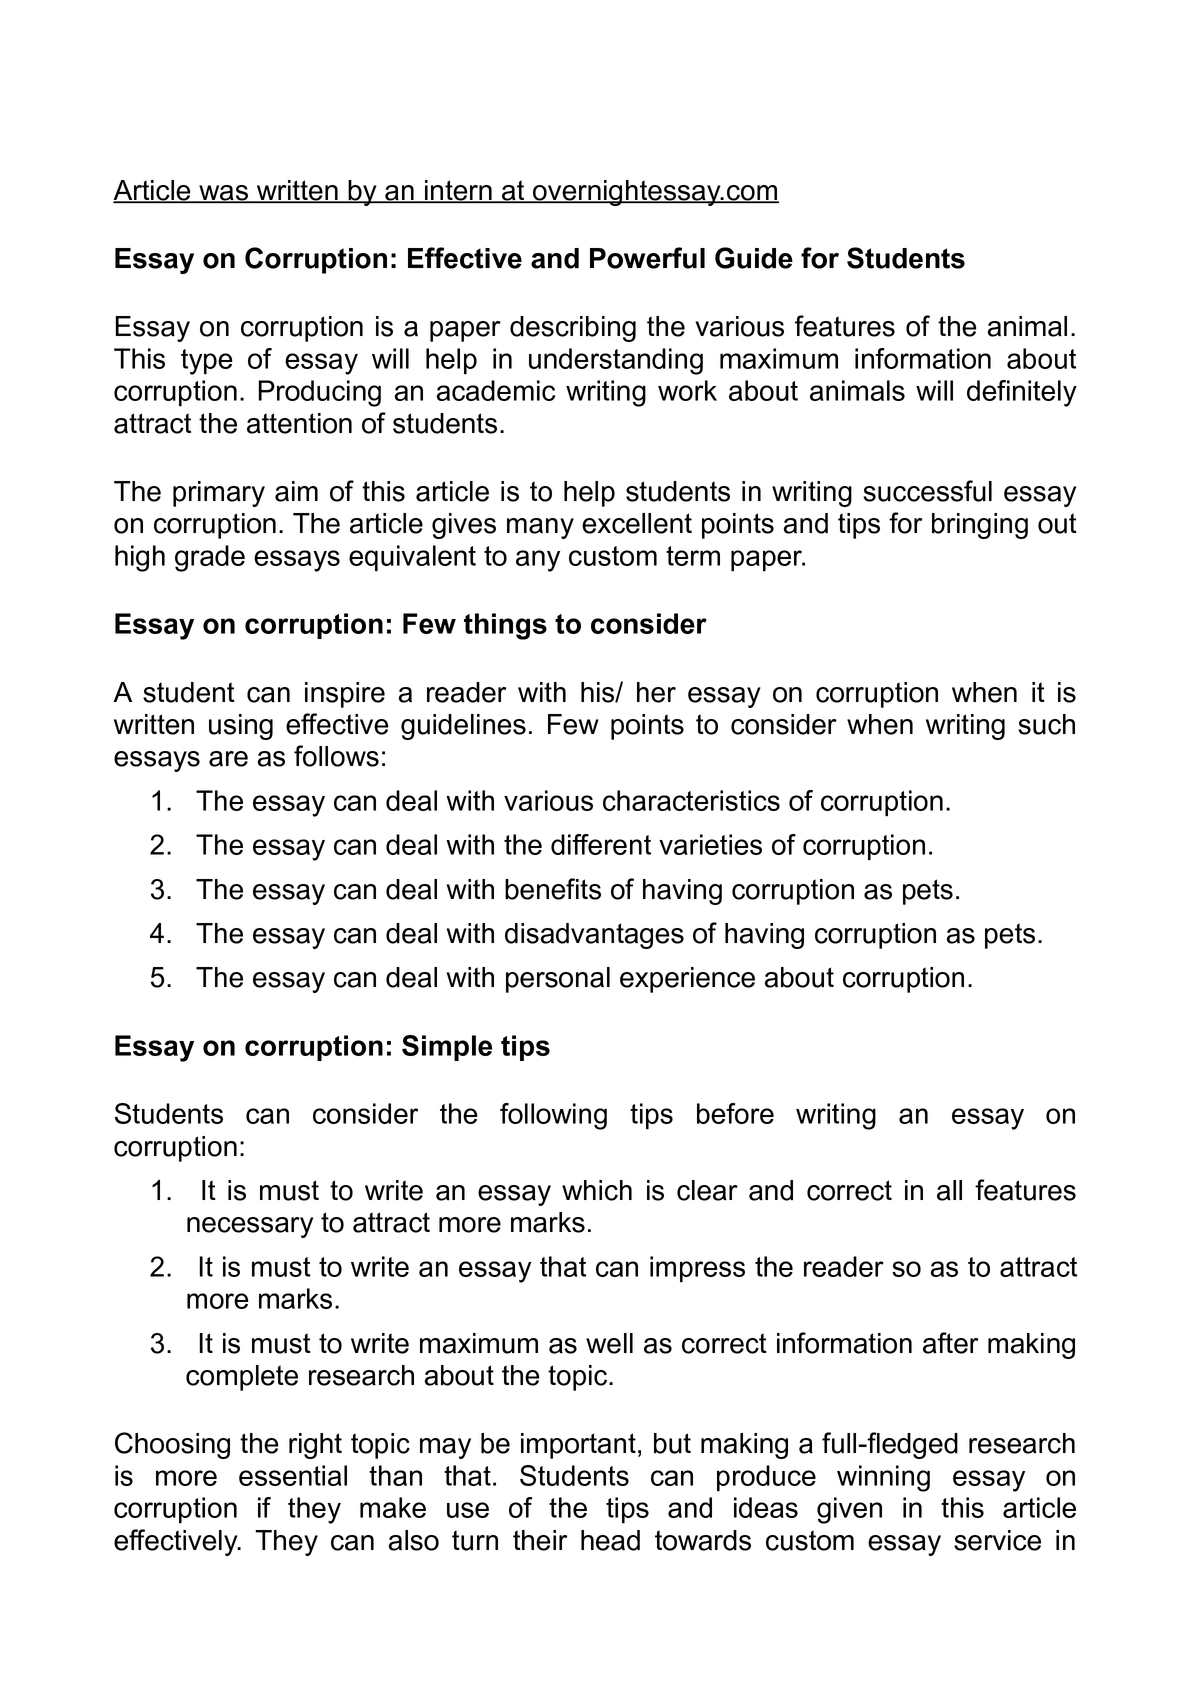 p jpg calamatildecopyo essay on corruption effective and powerful guide for